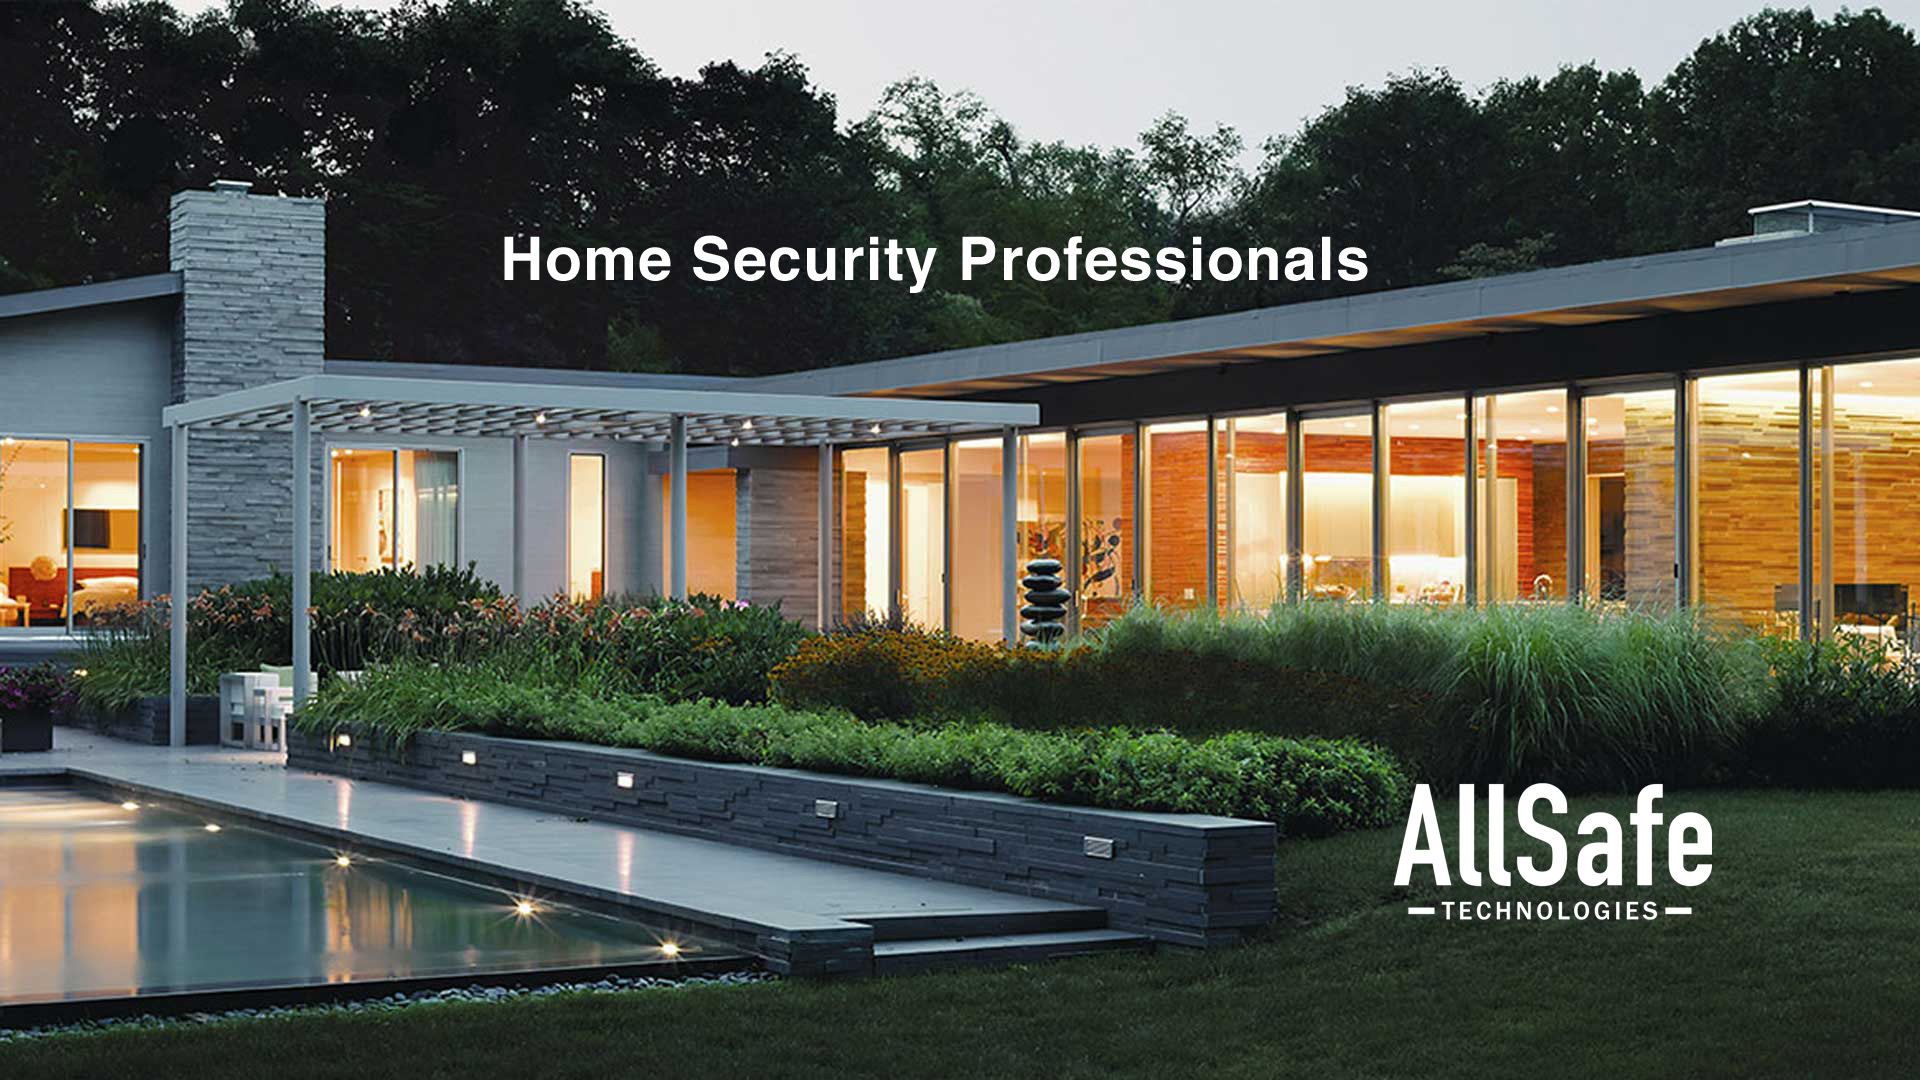 Home Security Professionals